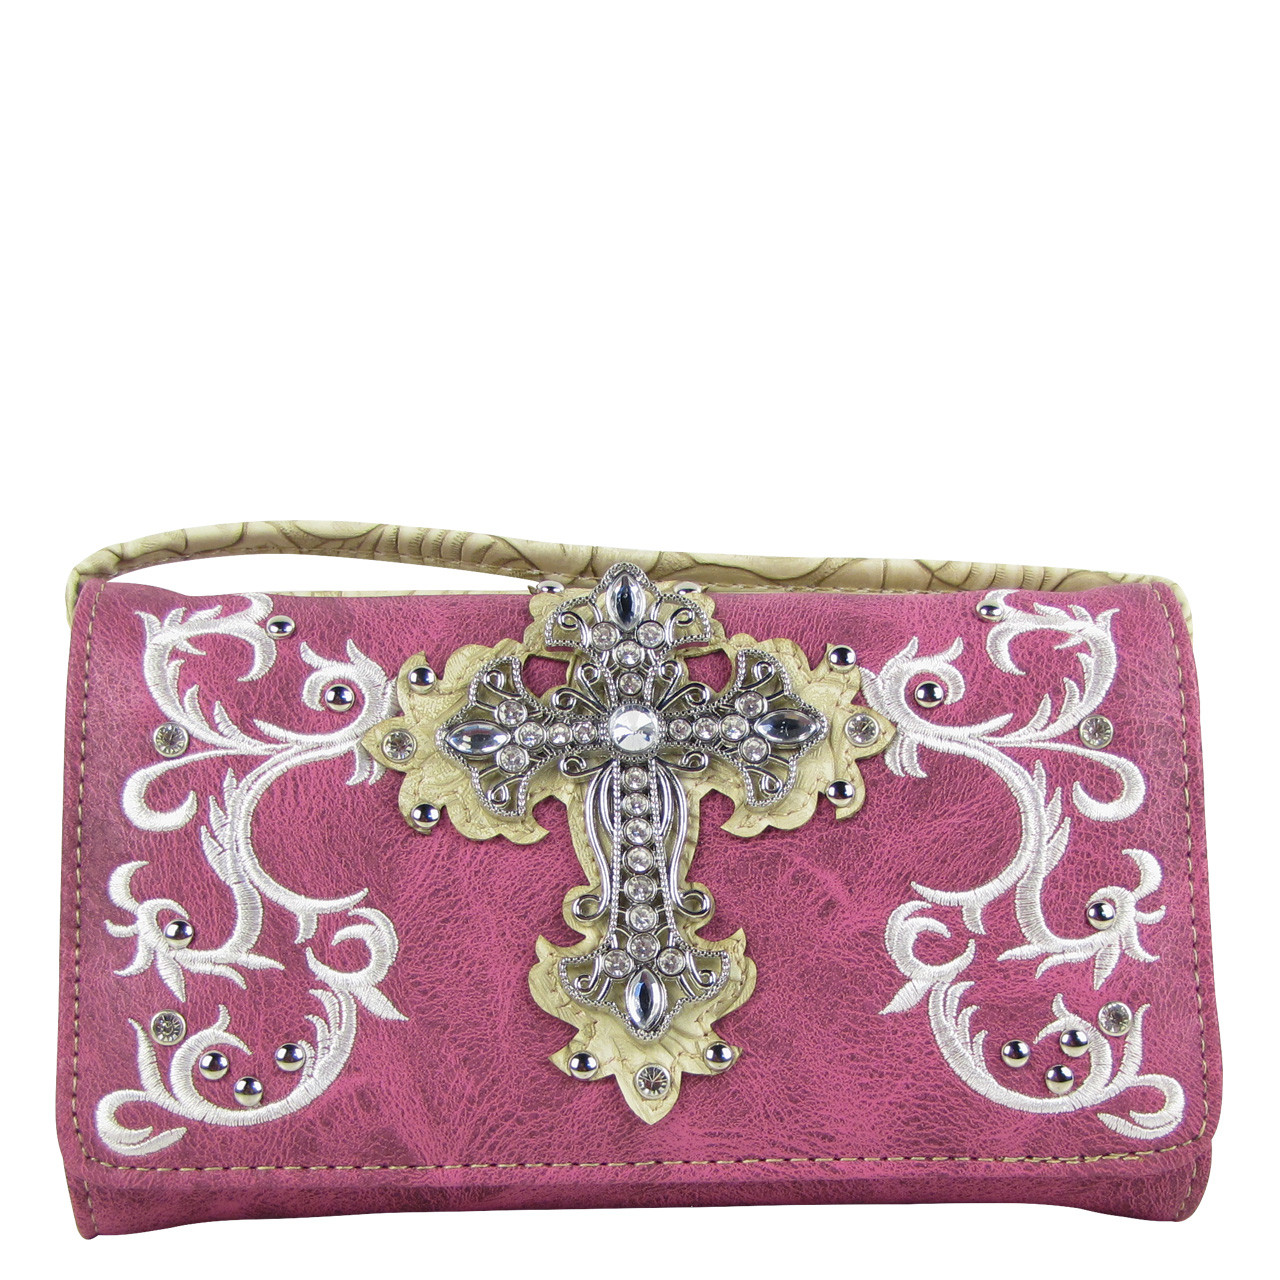 PURPLE RHINESTONE CROSS LOOK CLUTCH TRIFOLD WALLET CW1-0472PPL